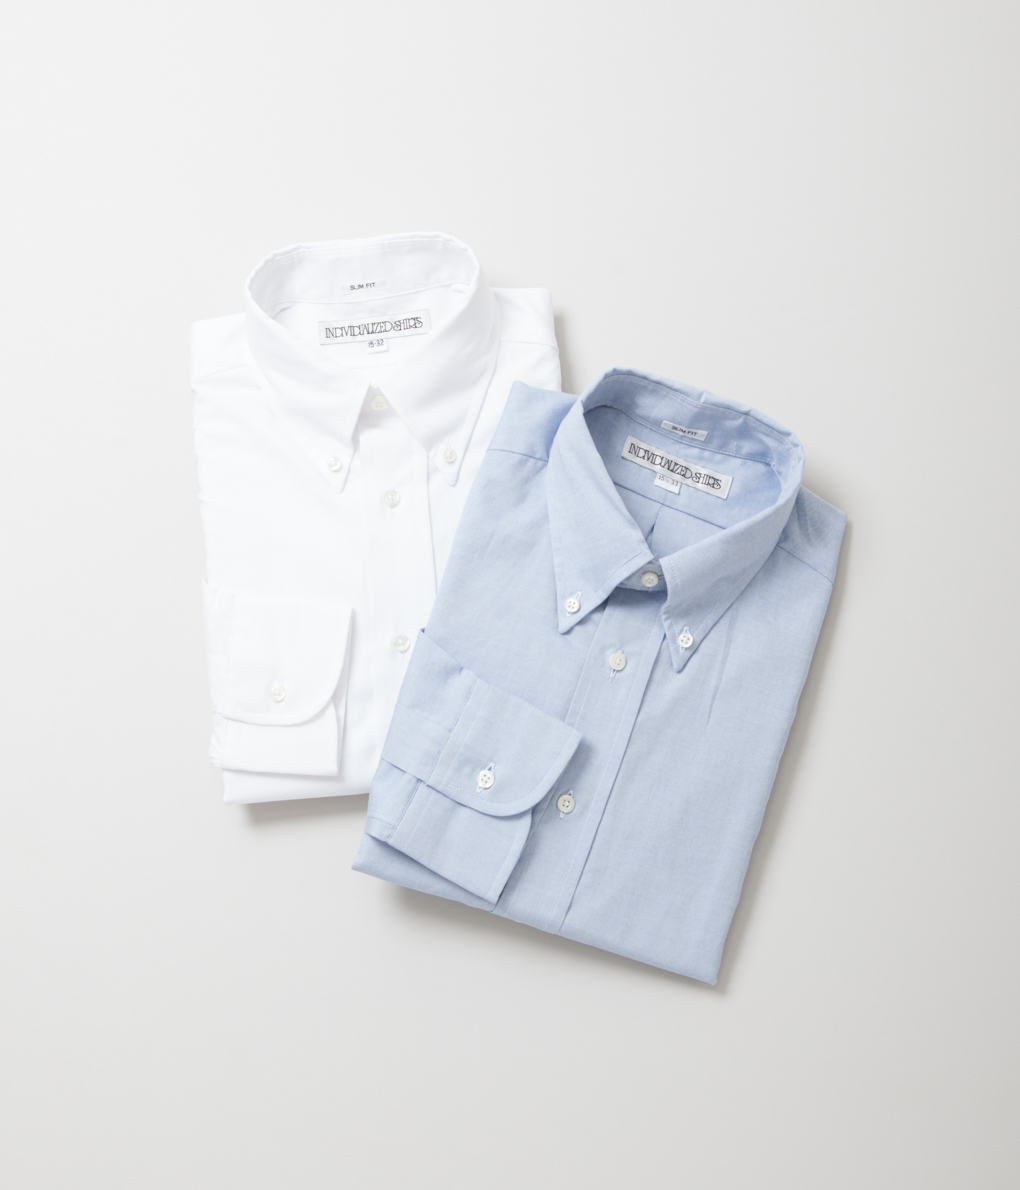 INDIVIDUALIZED SHIRTS インディビジュアライズドシャツ SLIM FIT PINPOINT OXFORD